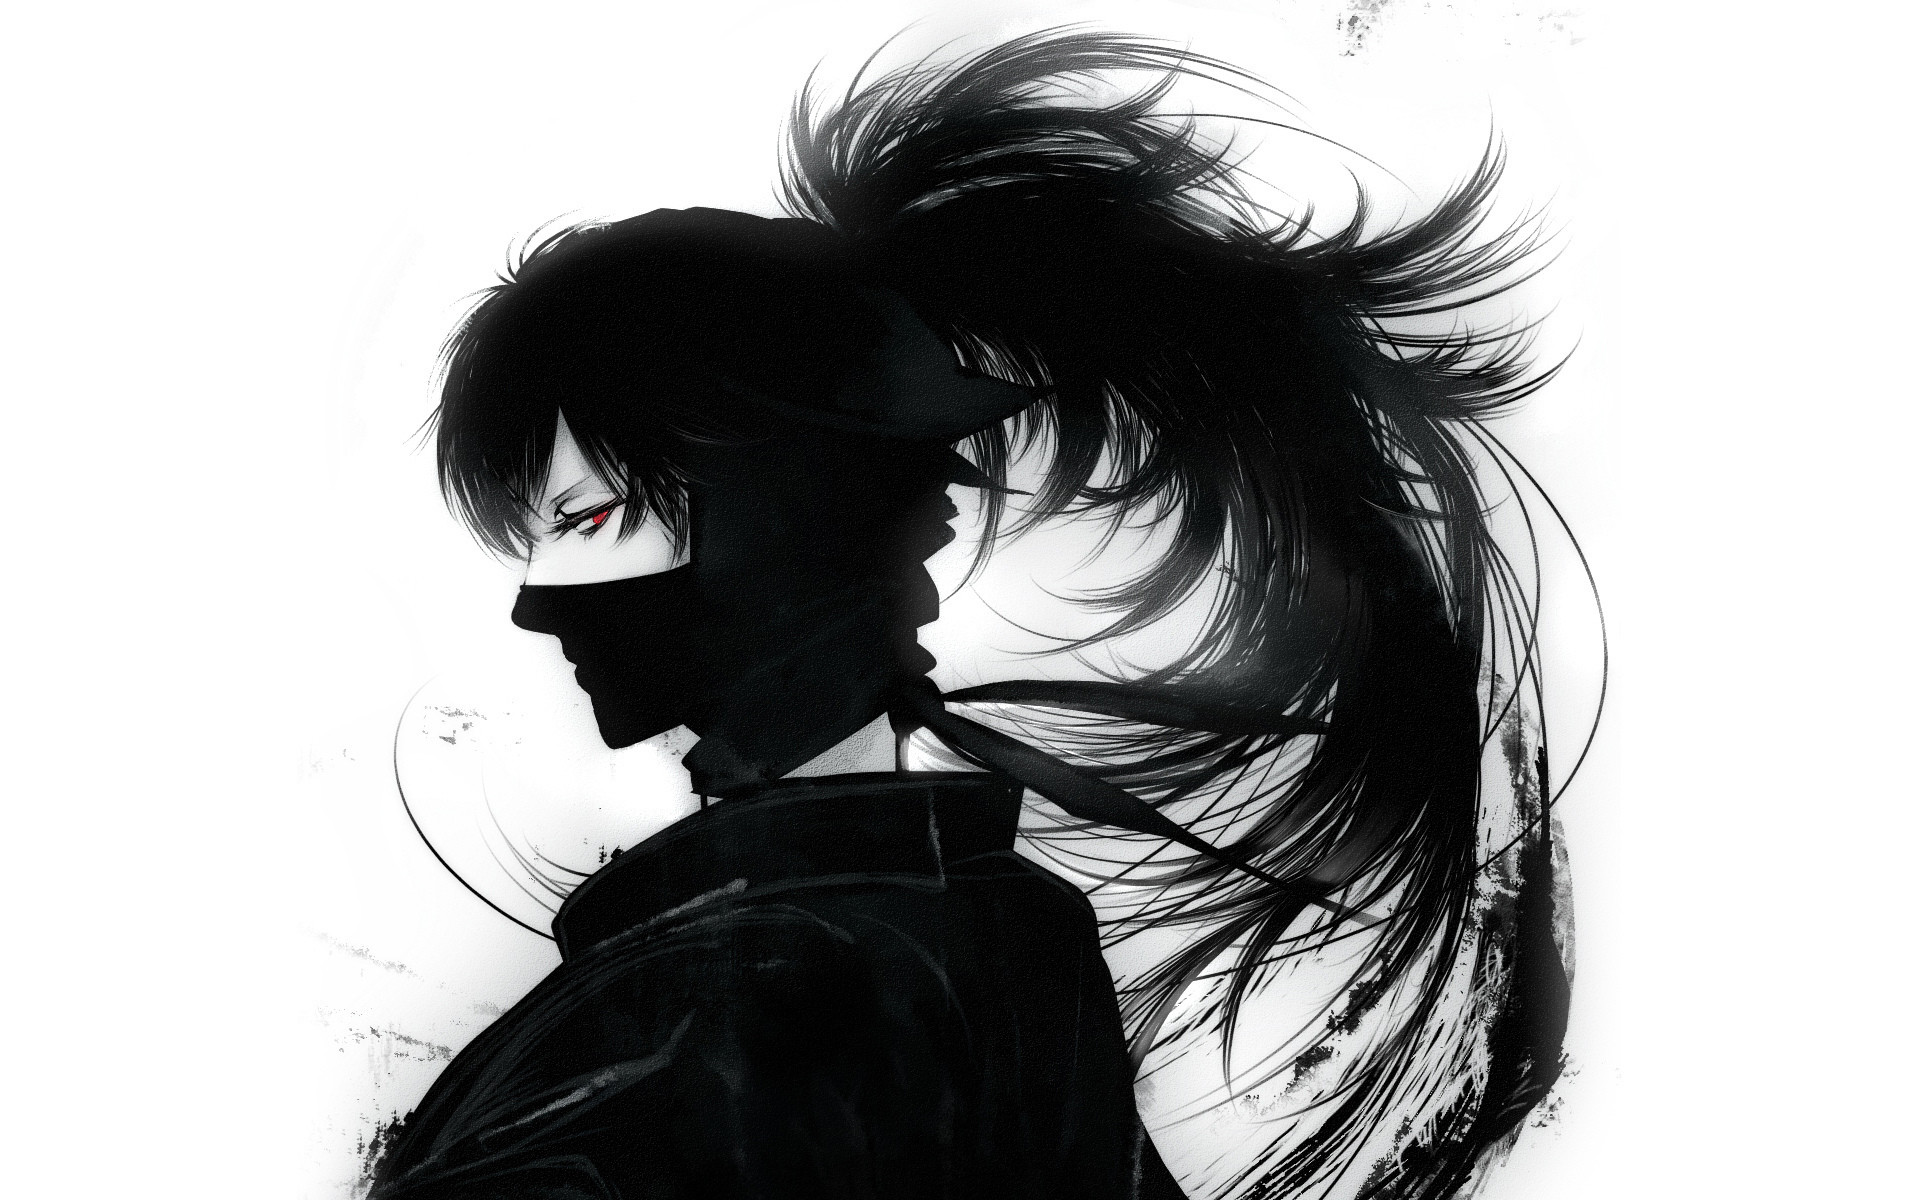 Anime cool guy wallpaper 58 images - Black and white anime wallpaper ...